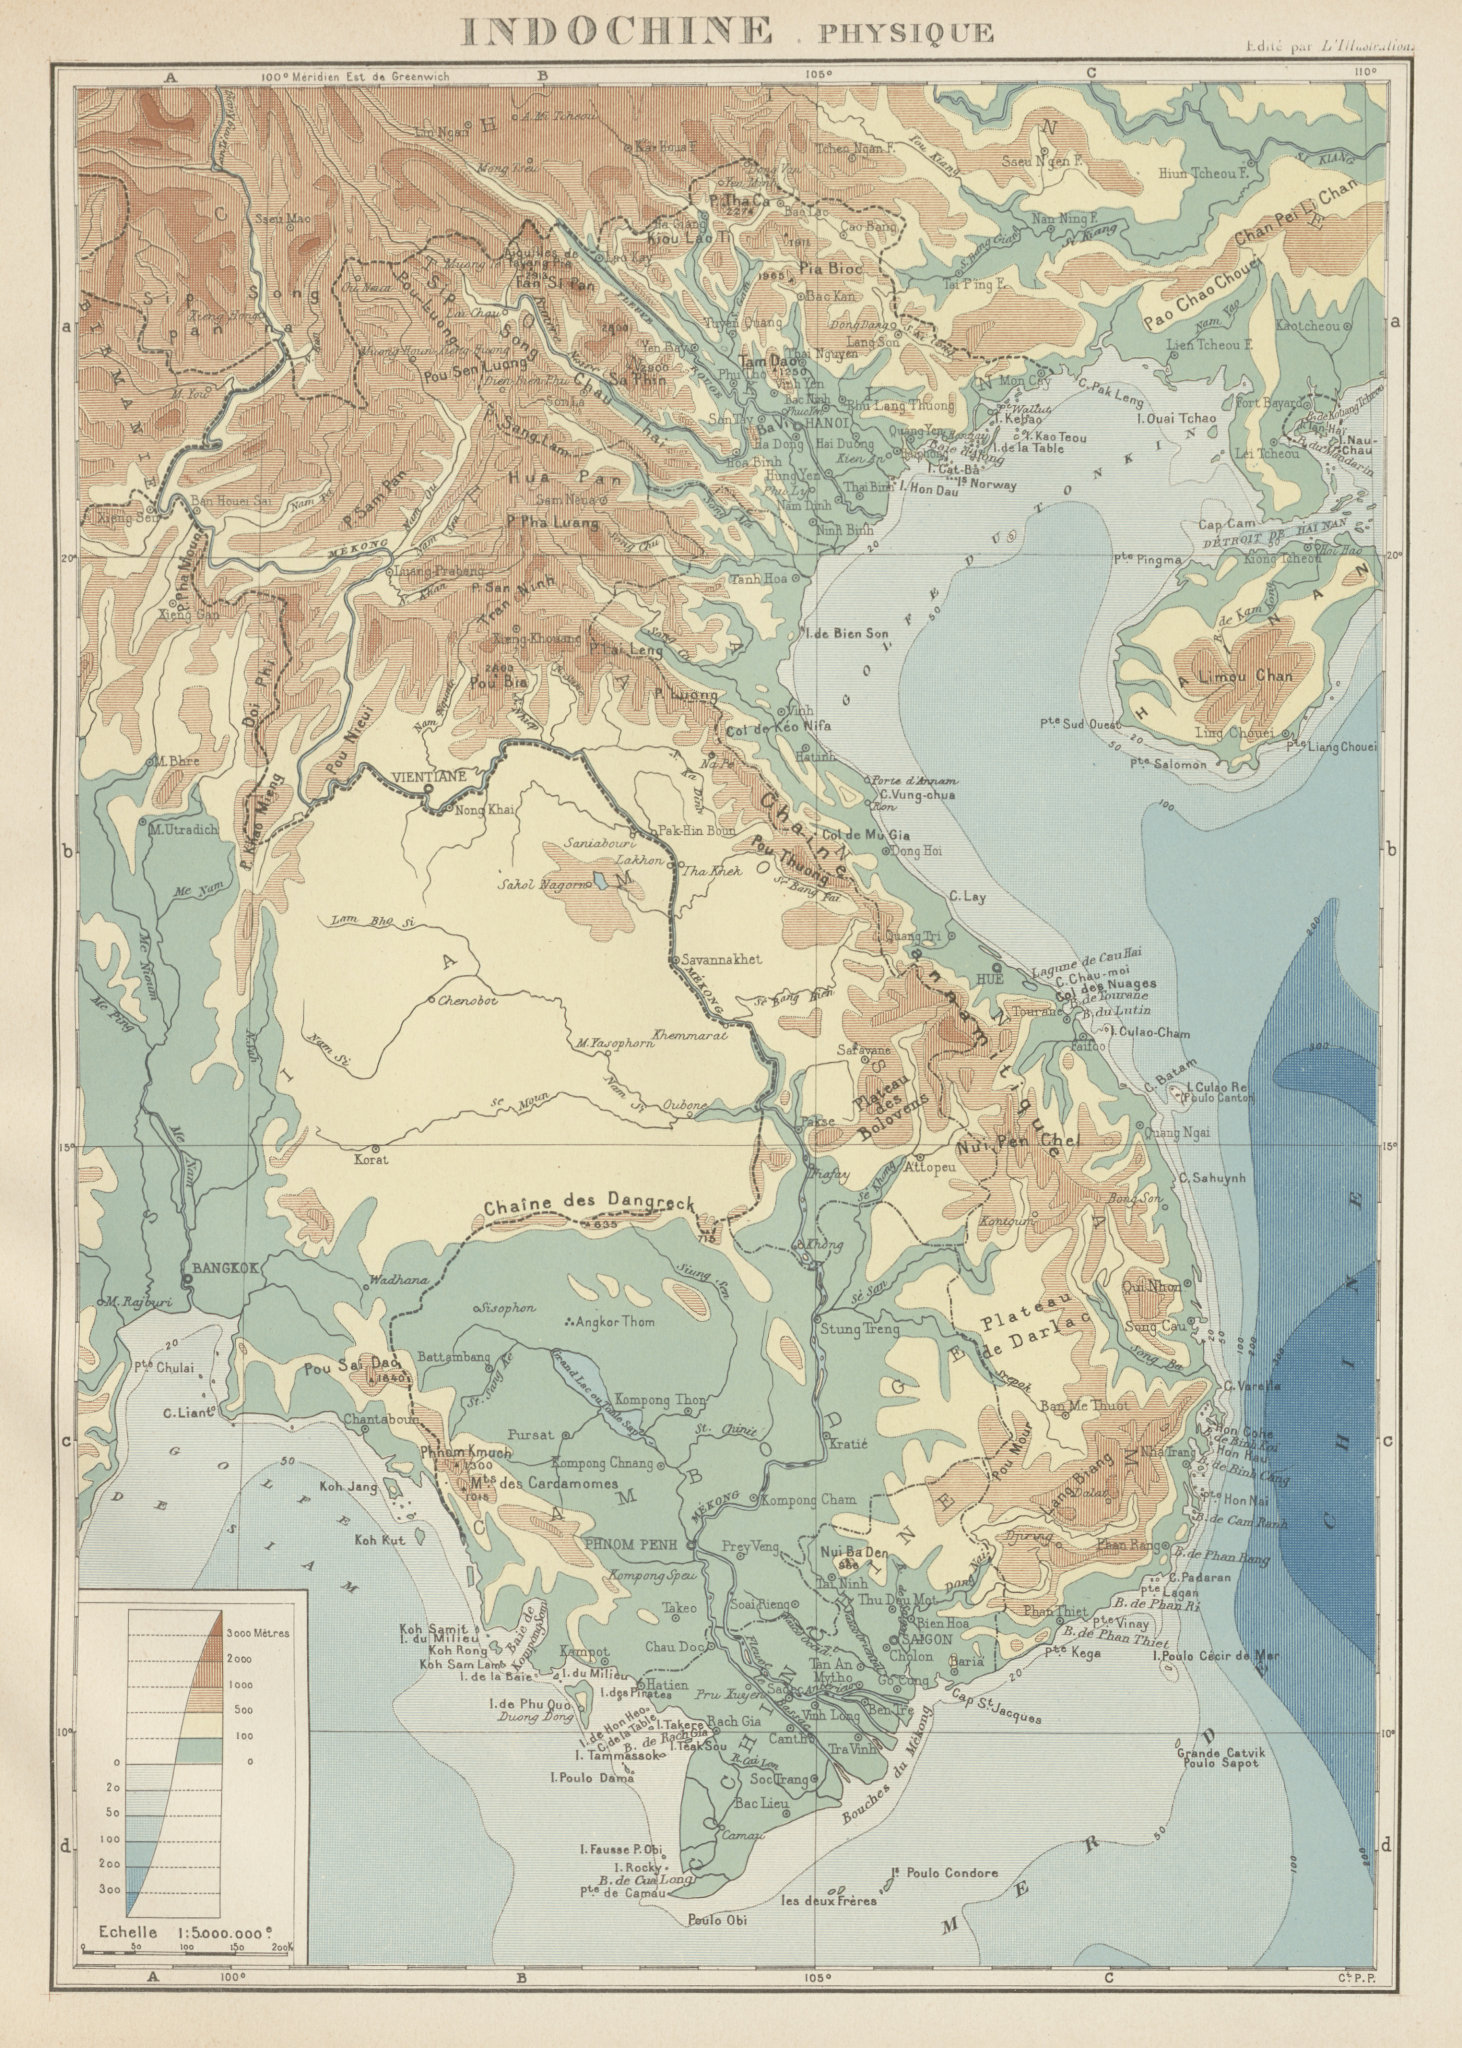 Associate Product COLONIAL FRENCH INDOCHINA. Indochine française. Physique. Physical 1929 map